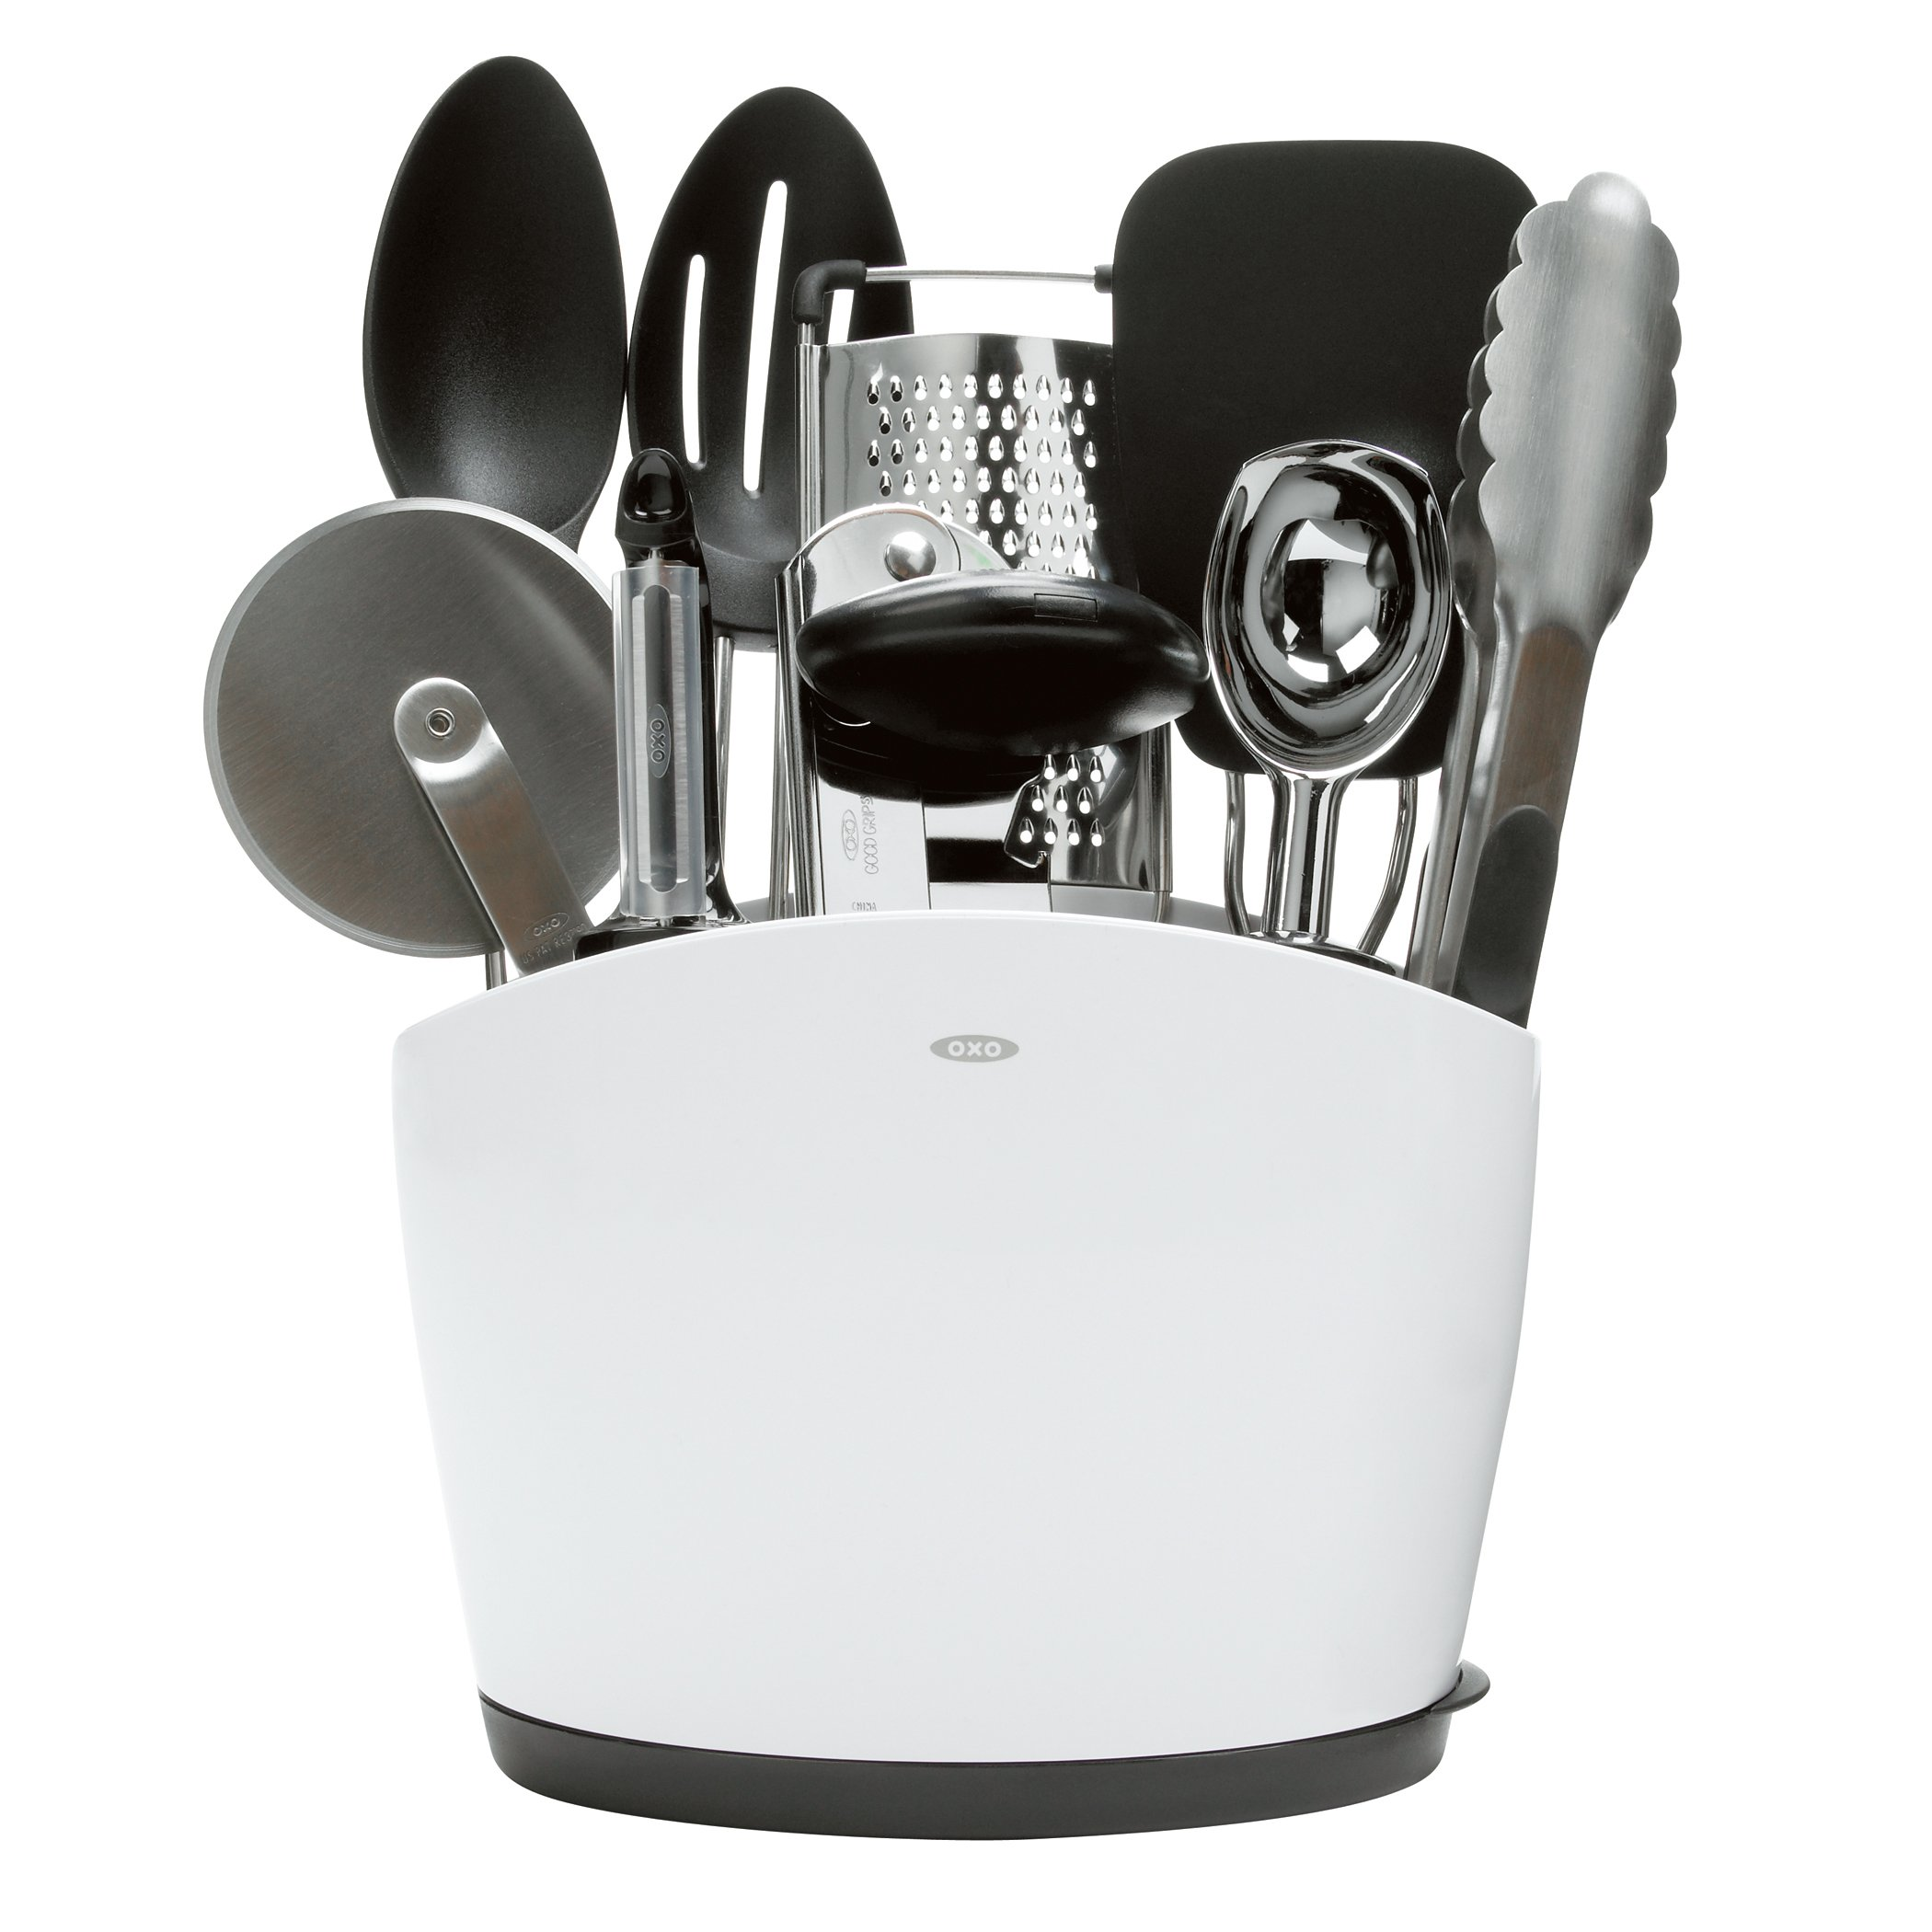 OXO Good Grips 10-Piece Everyday Kitchen Tool Set by OXO